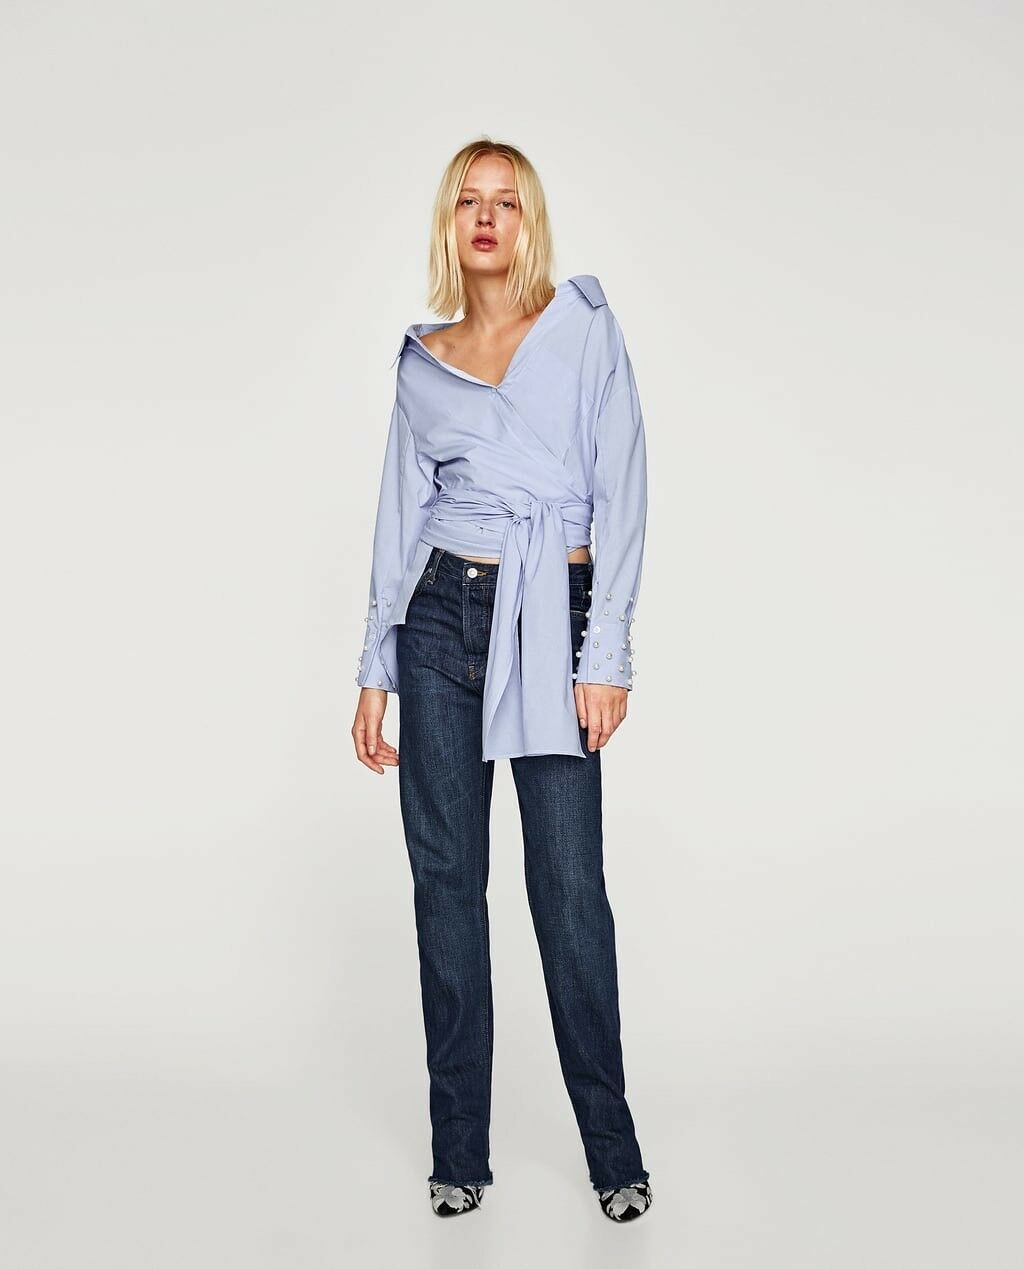 Zara New AW17 Asymmetric Shirt With Pearly Cuffs Tops Größe L NWT